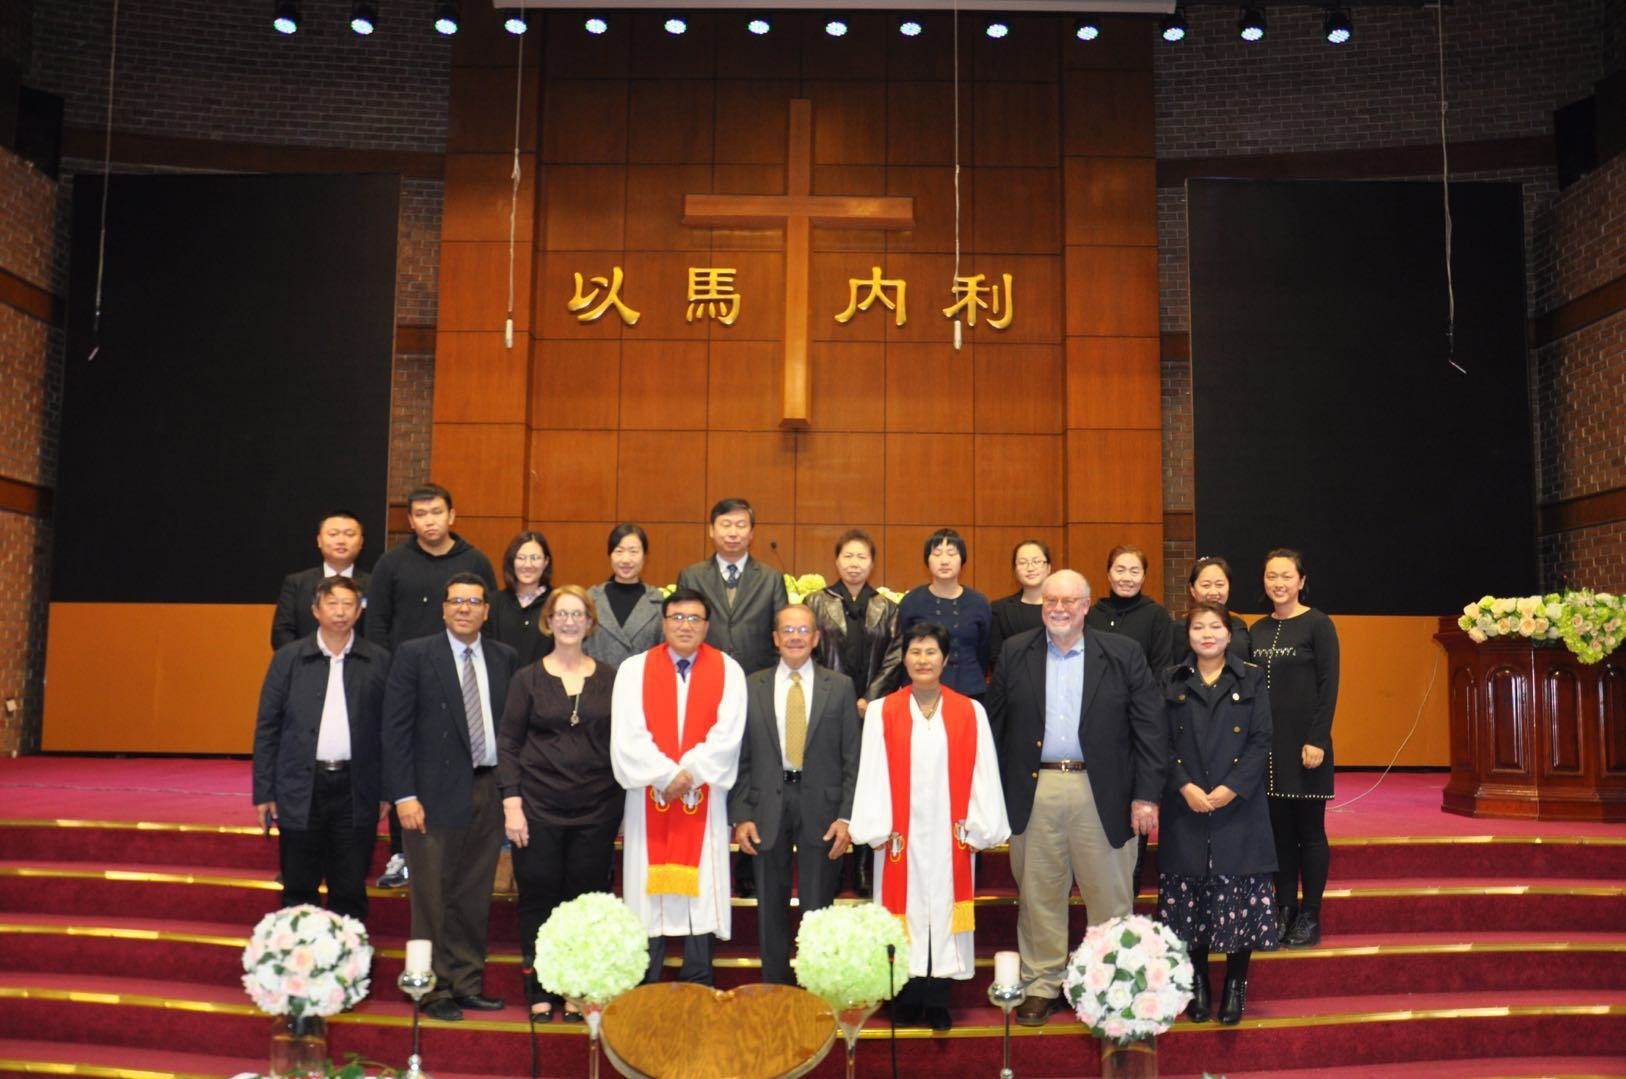 The Outreach Foundation team with brothers and sisters at Hallelujah Church, Harbin, China